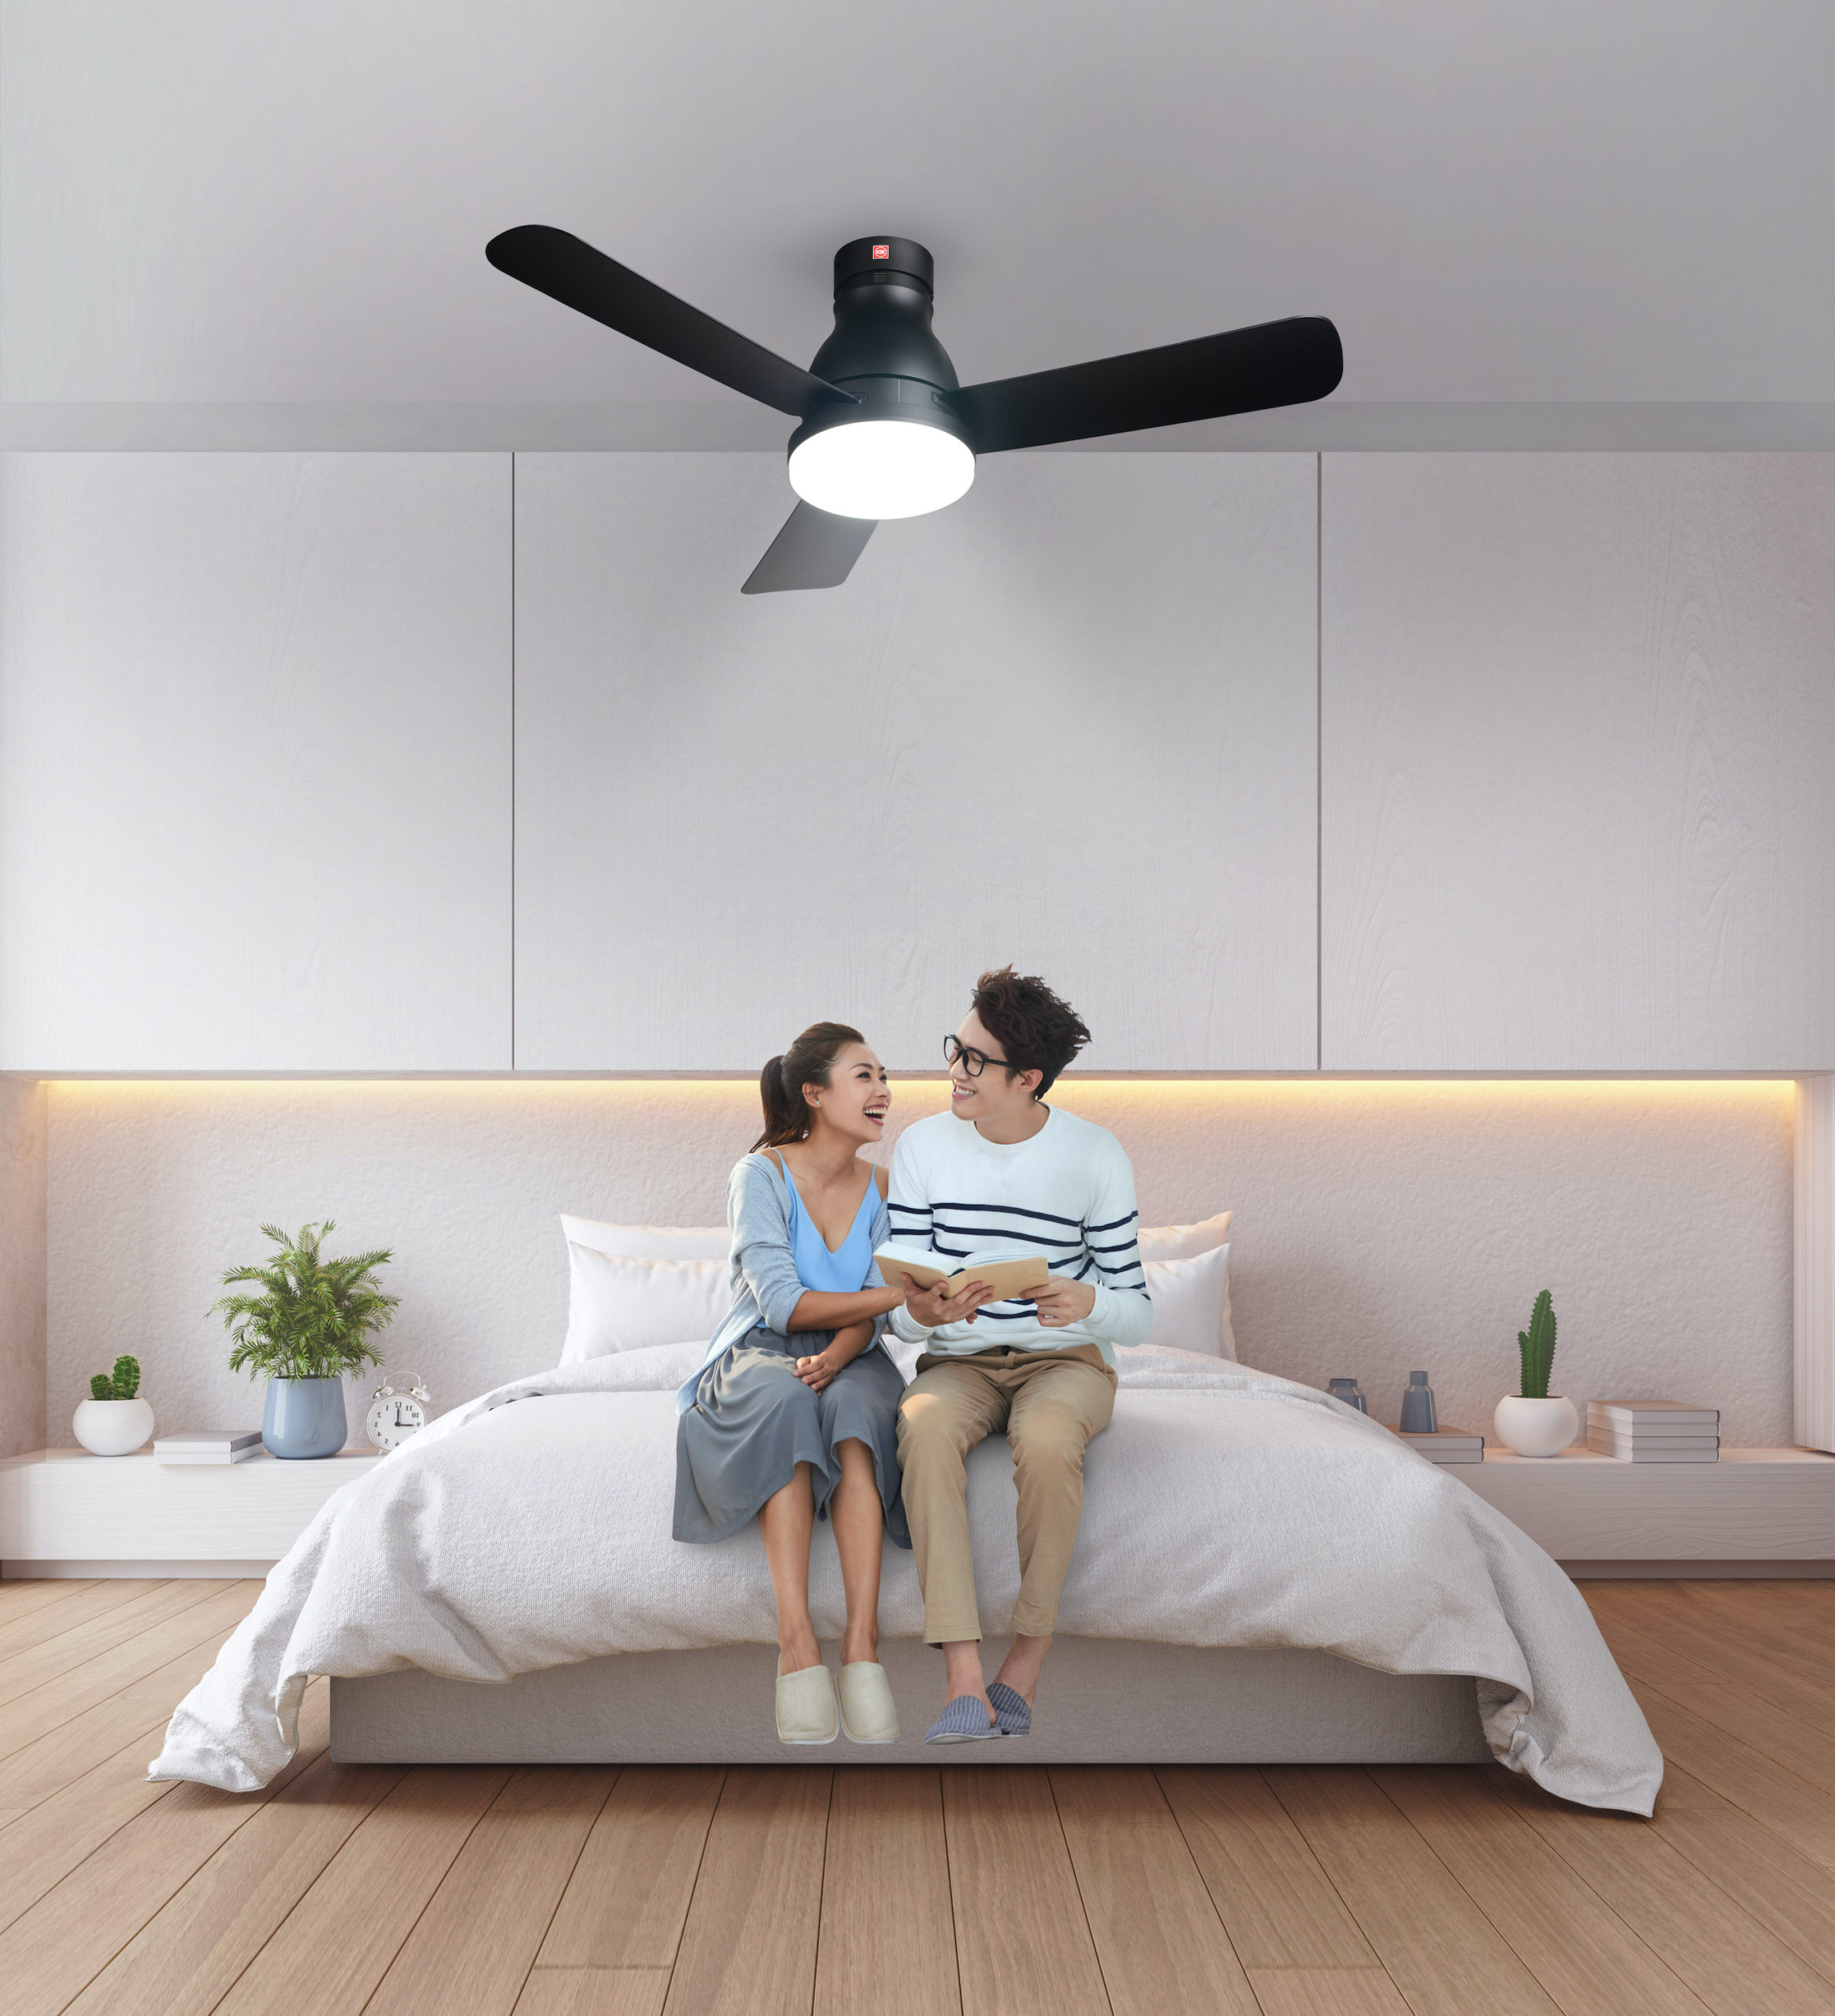 10 Best Ceiling Fans In Singapore With Bladeless Options To Stay Cool In 2020